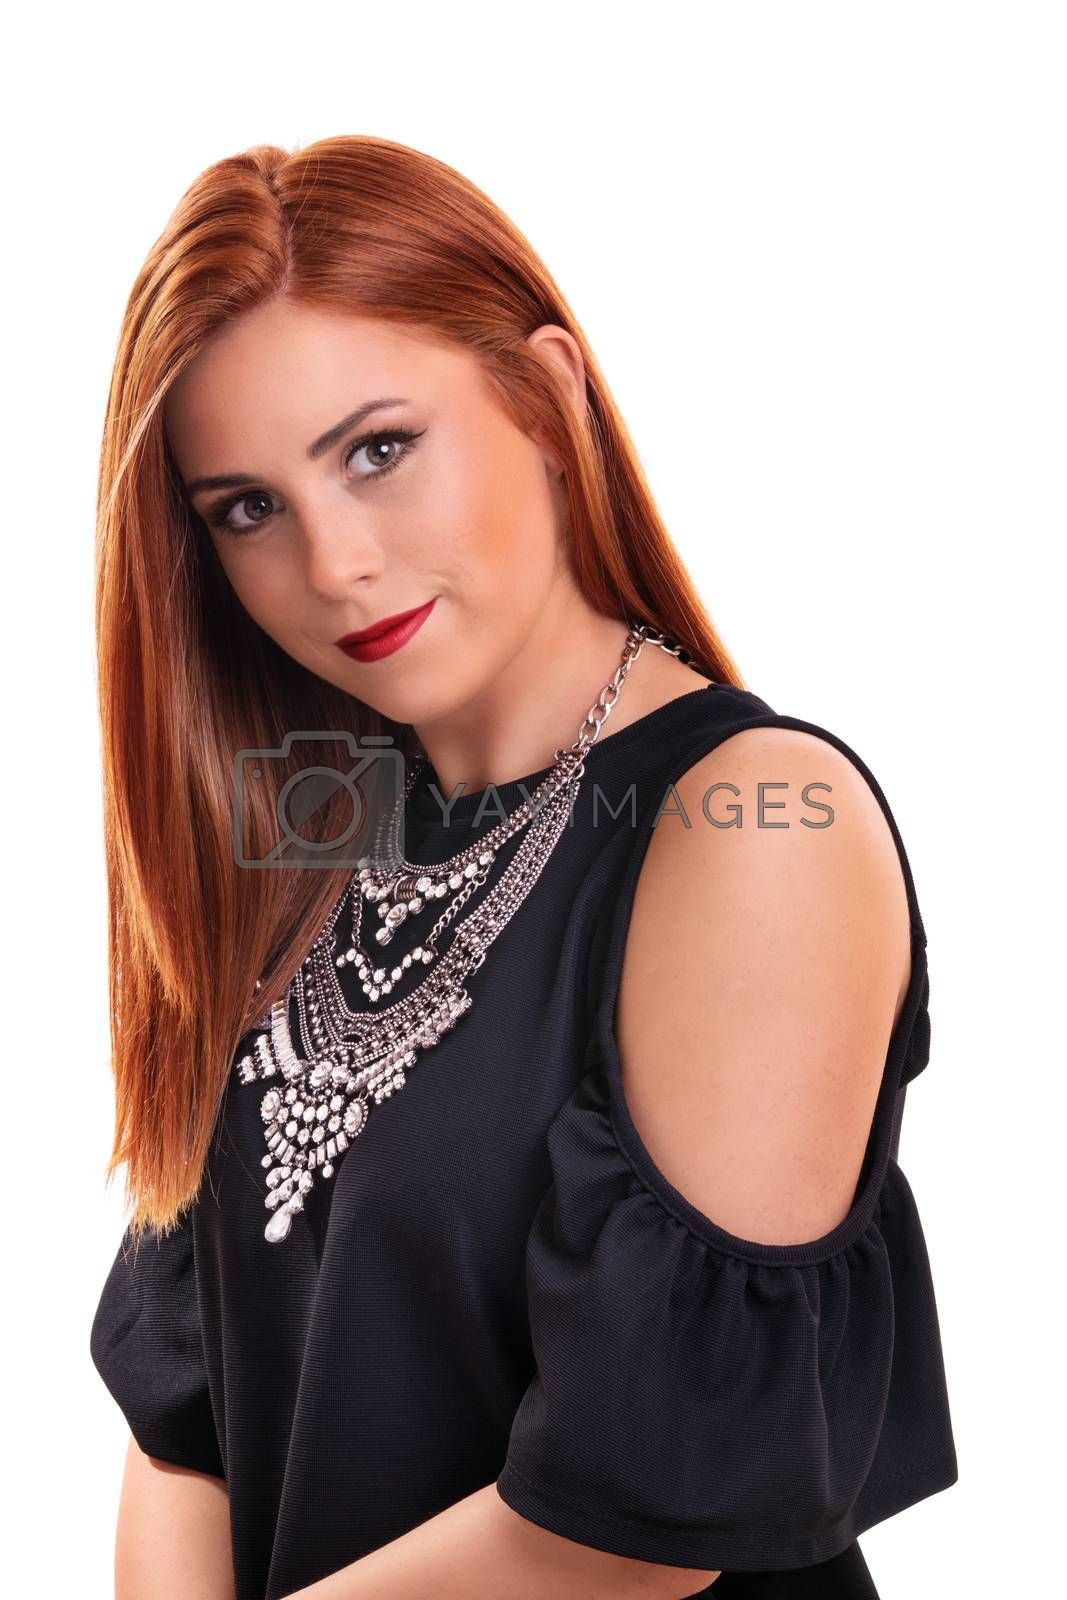 Head shot of a beautiful, attractive redheaded young woman with clean make up, stylish black blouse and modern silver necklace, isolated on white background. Fashion and beauty concept.